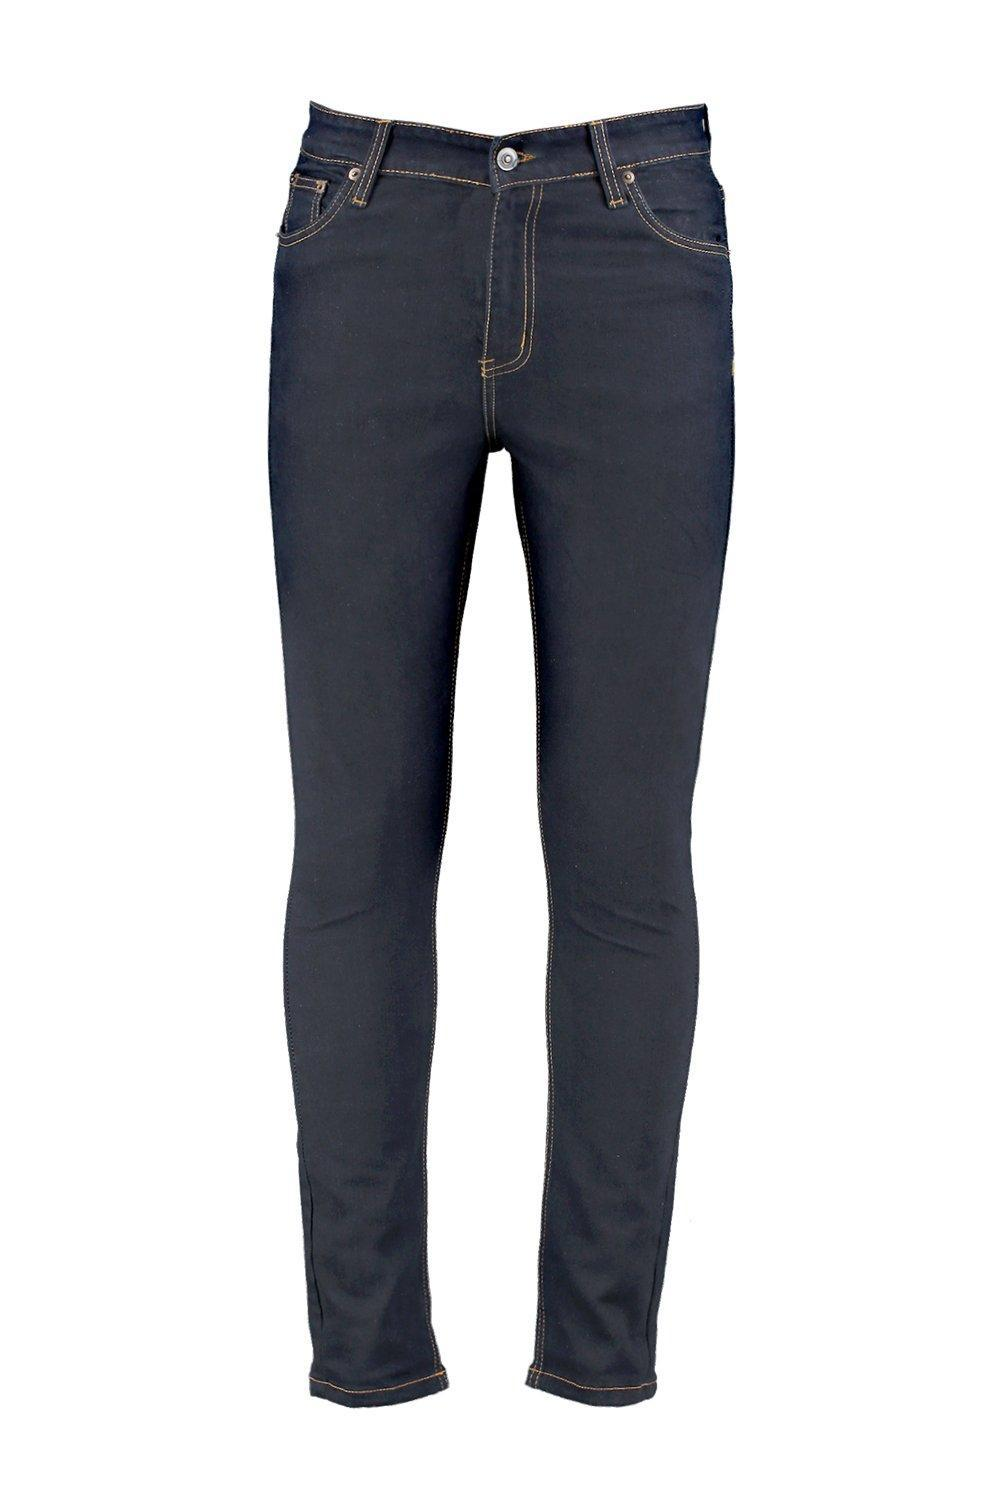 Boohoo Denim Indigo Super Skinny Fit Jeans in Blue for Men